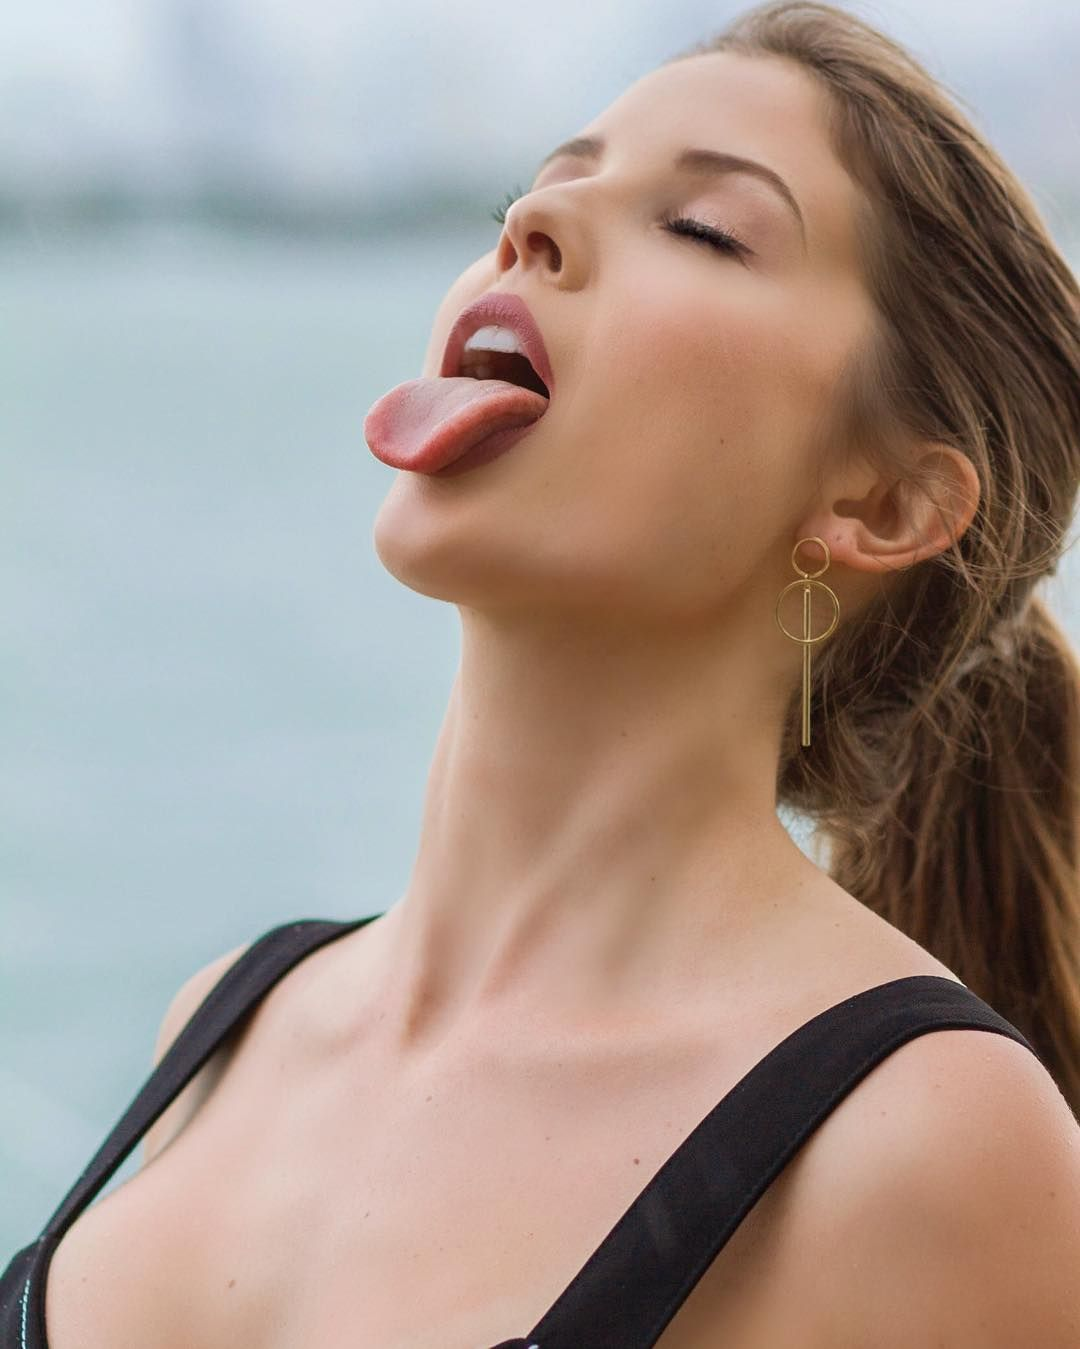 Think, that Girl jean hot tongue very valuable